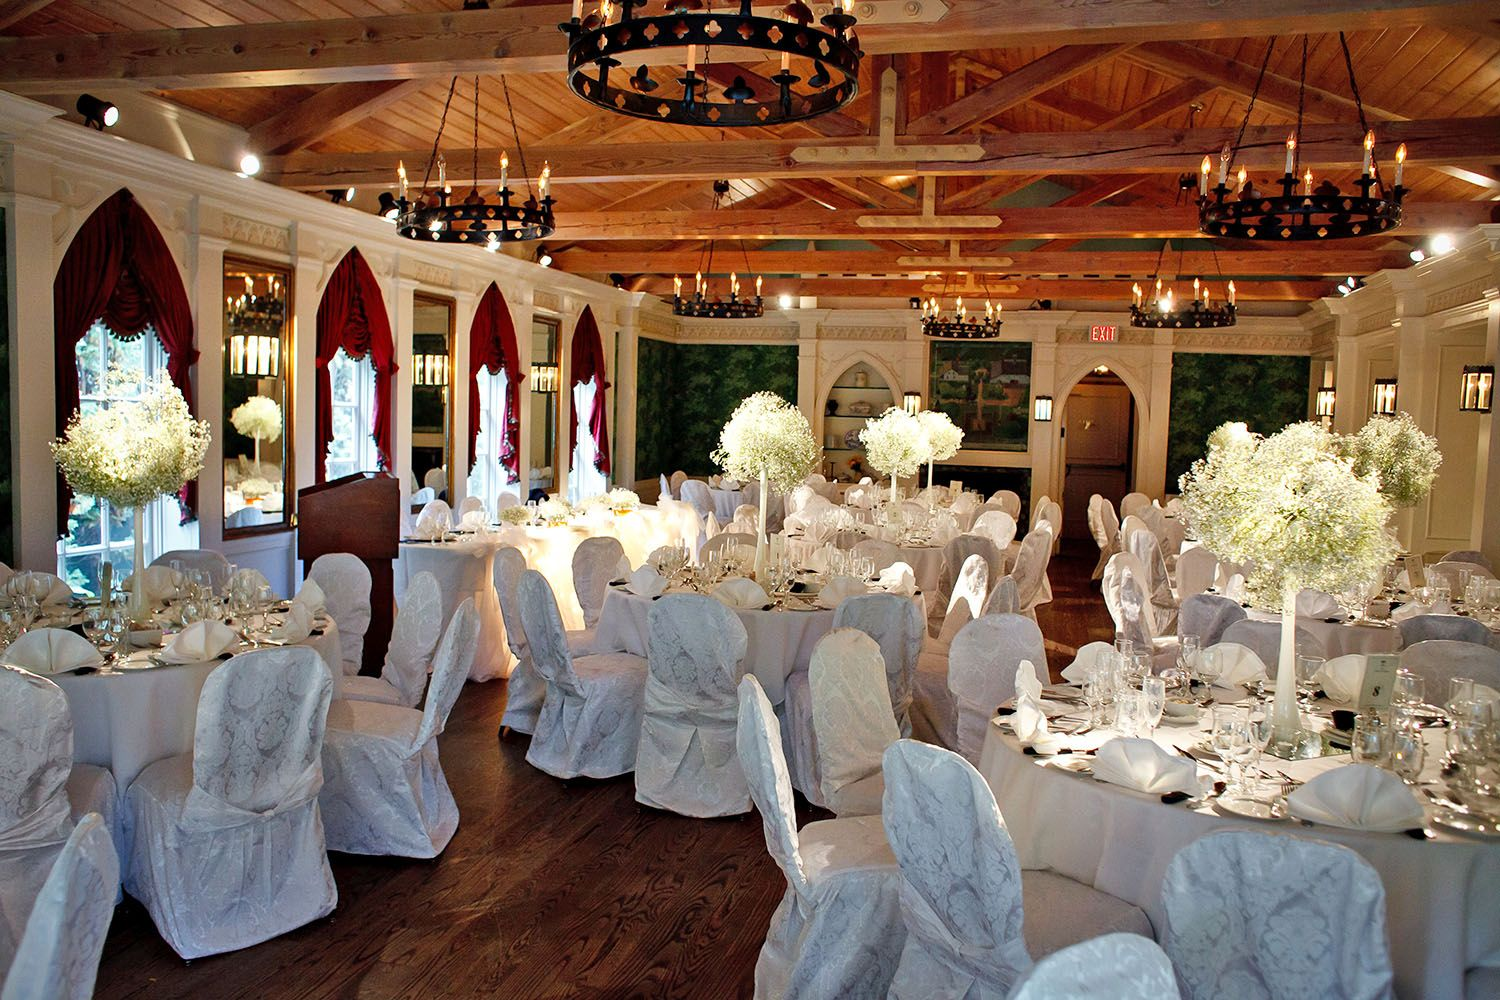 wedding reception venues cost%0A Weddings    The Doctor u    s House in Kleinburg  ON  Several reception venues to  choose from at this